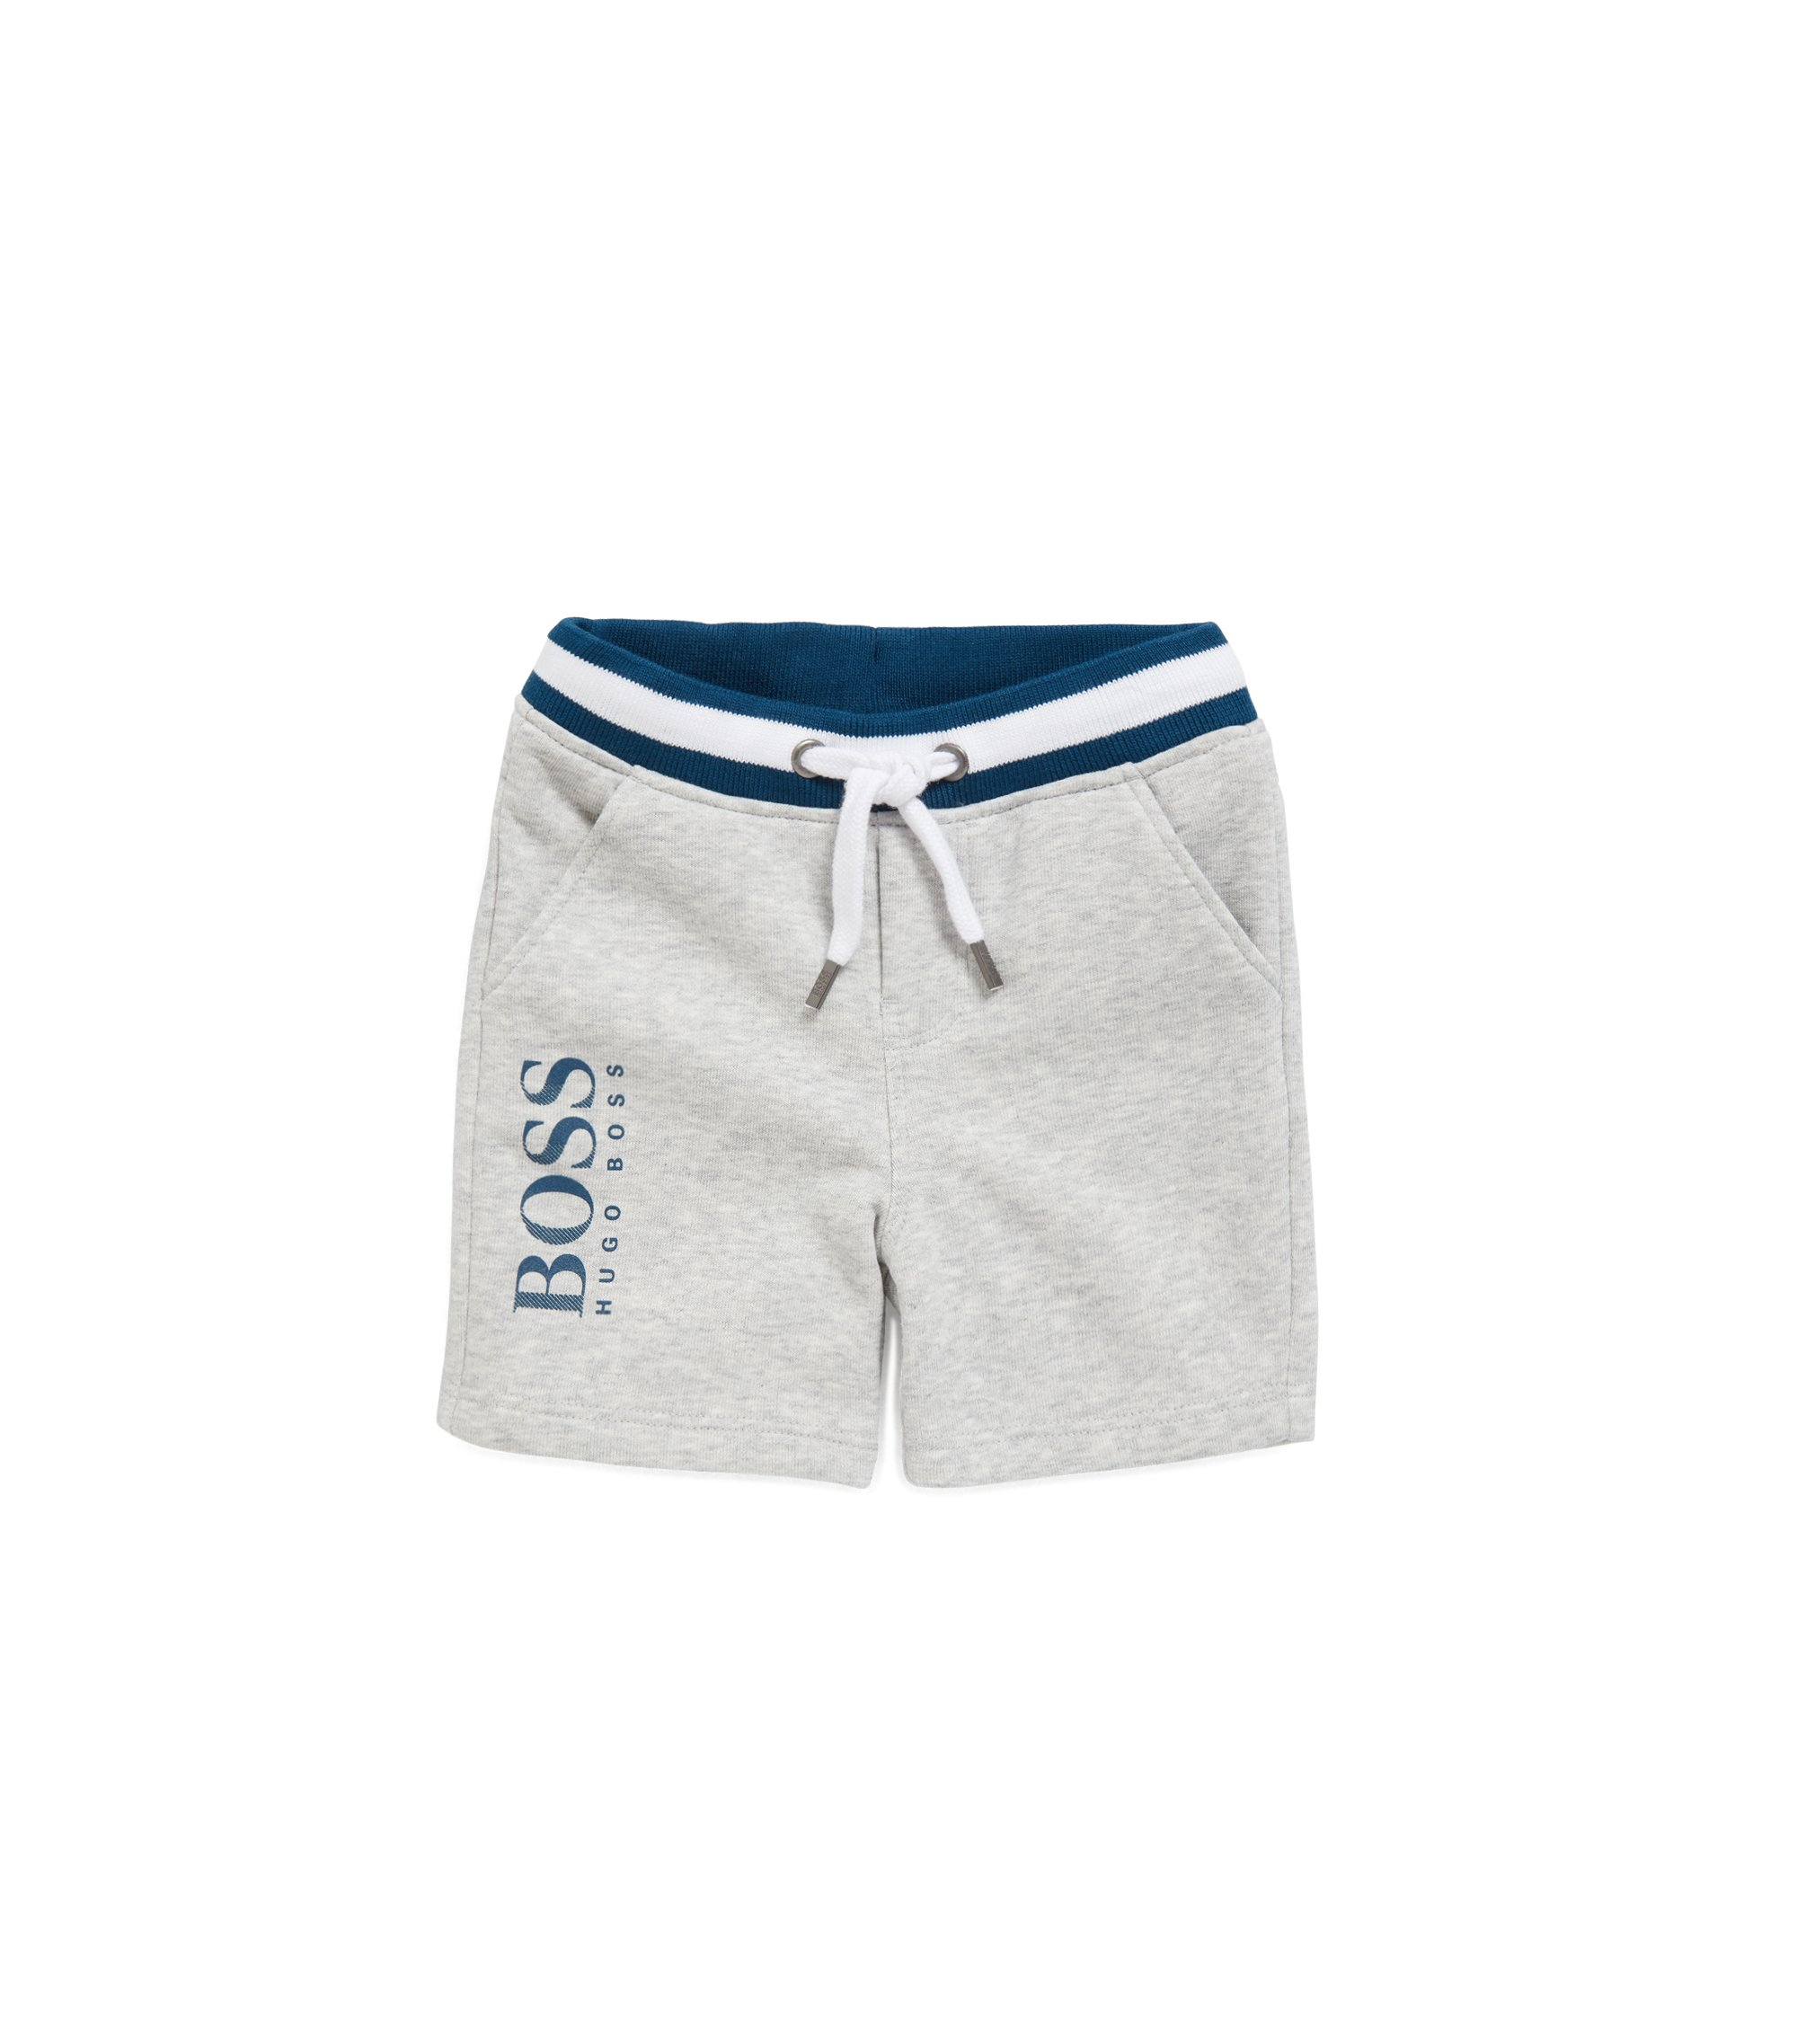 Kids' Bermuda shorts in French terry, Light Grey